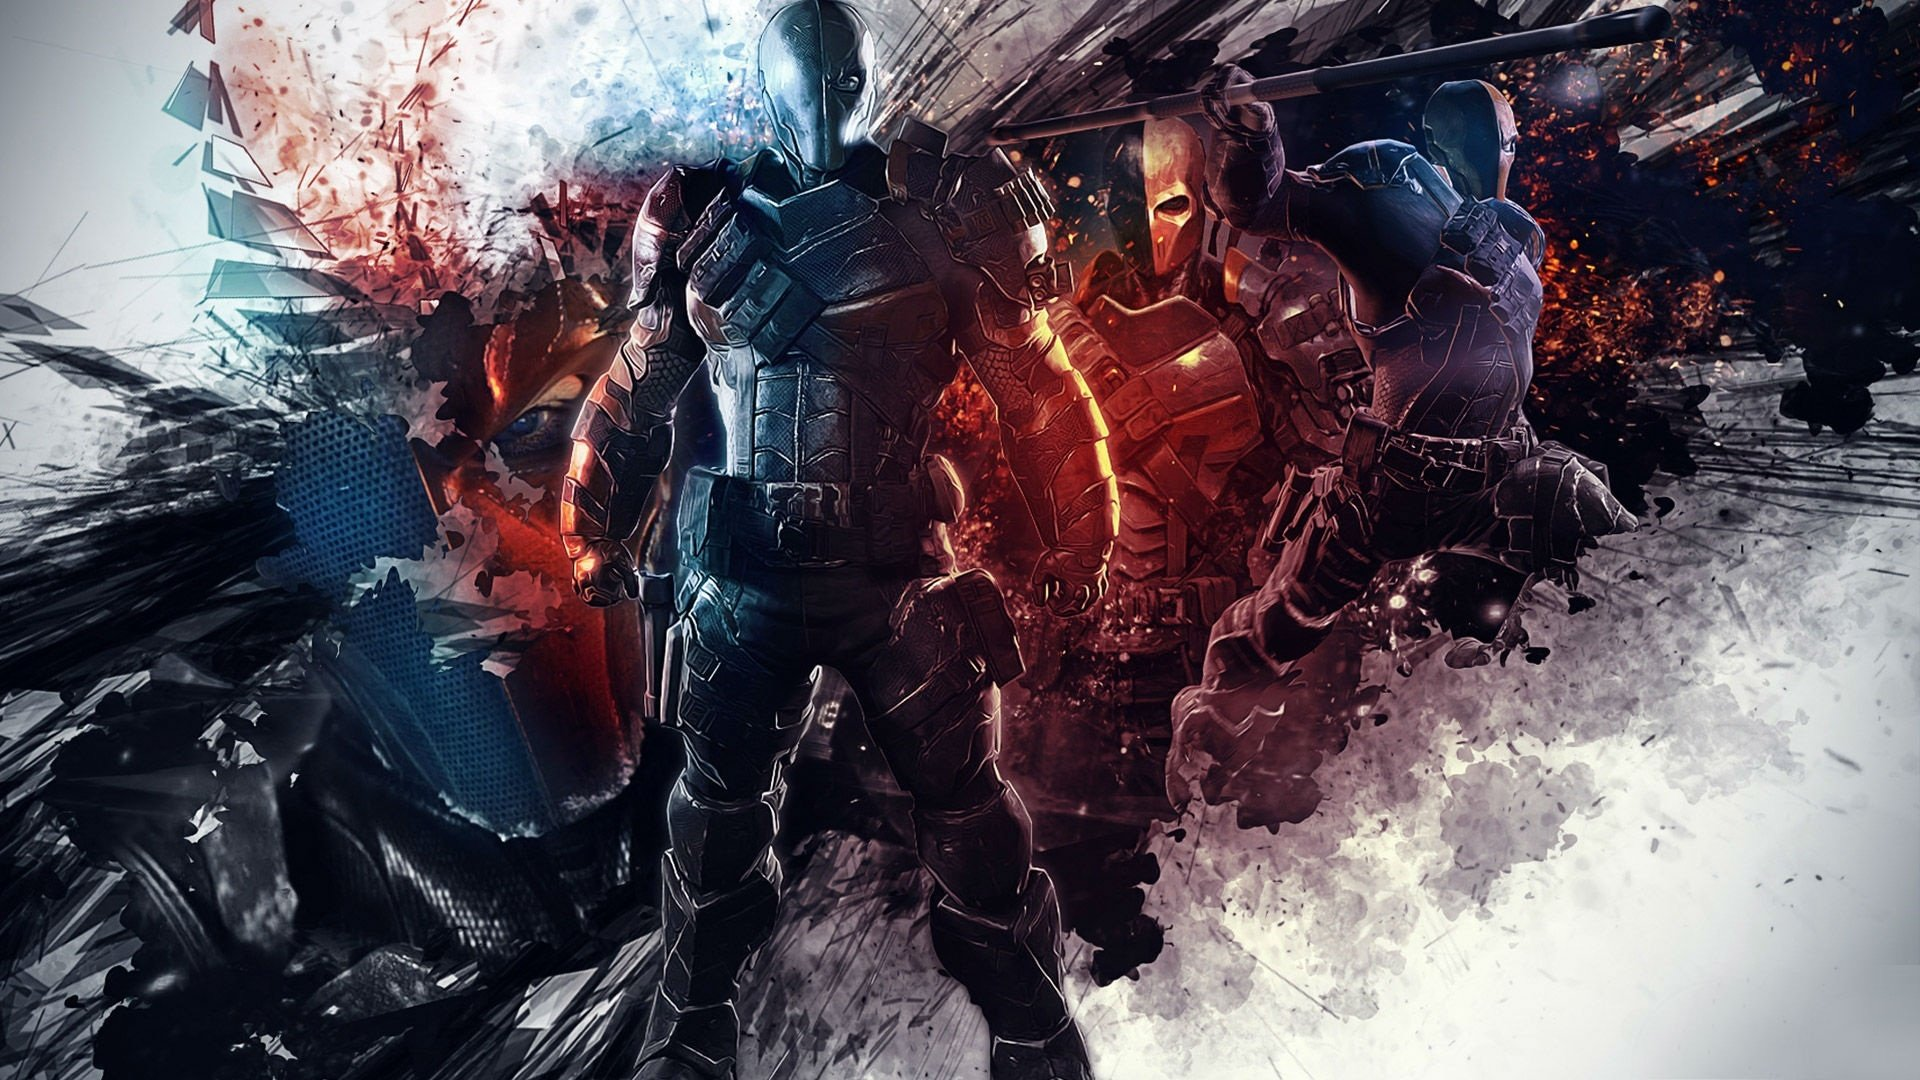 Batman Arkham Origins Deathstroke Wallpapers   1920x1080   712429 1920x1080